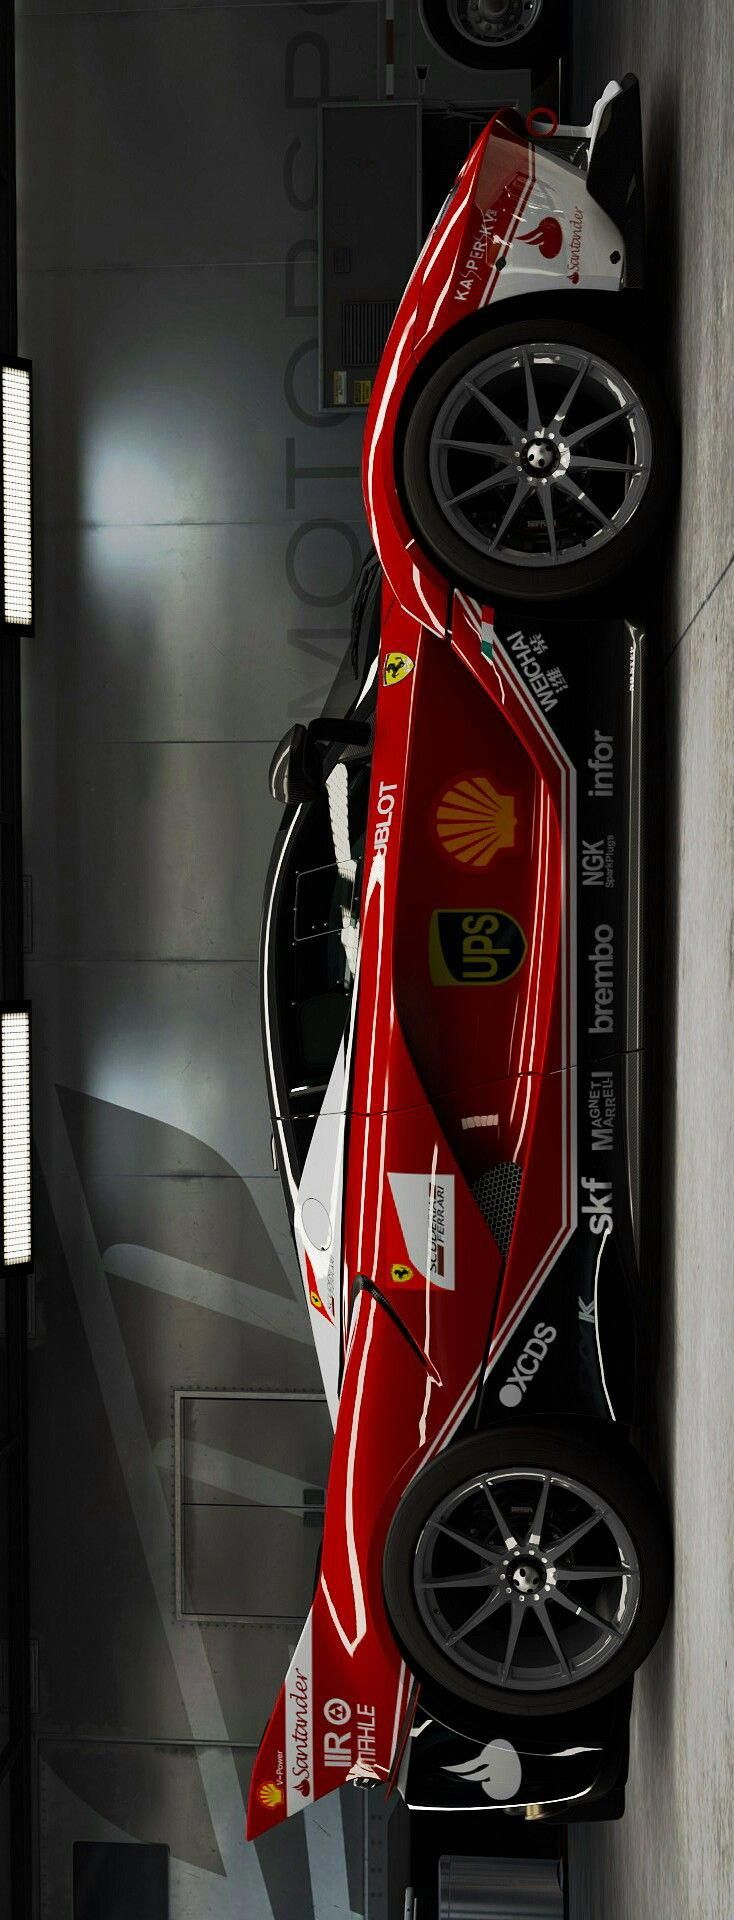 (°!°) Ferrari FXX-K using F1 Livery, HELL-yeah.... #ItalianInnovation:Cars #ferrarifxx